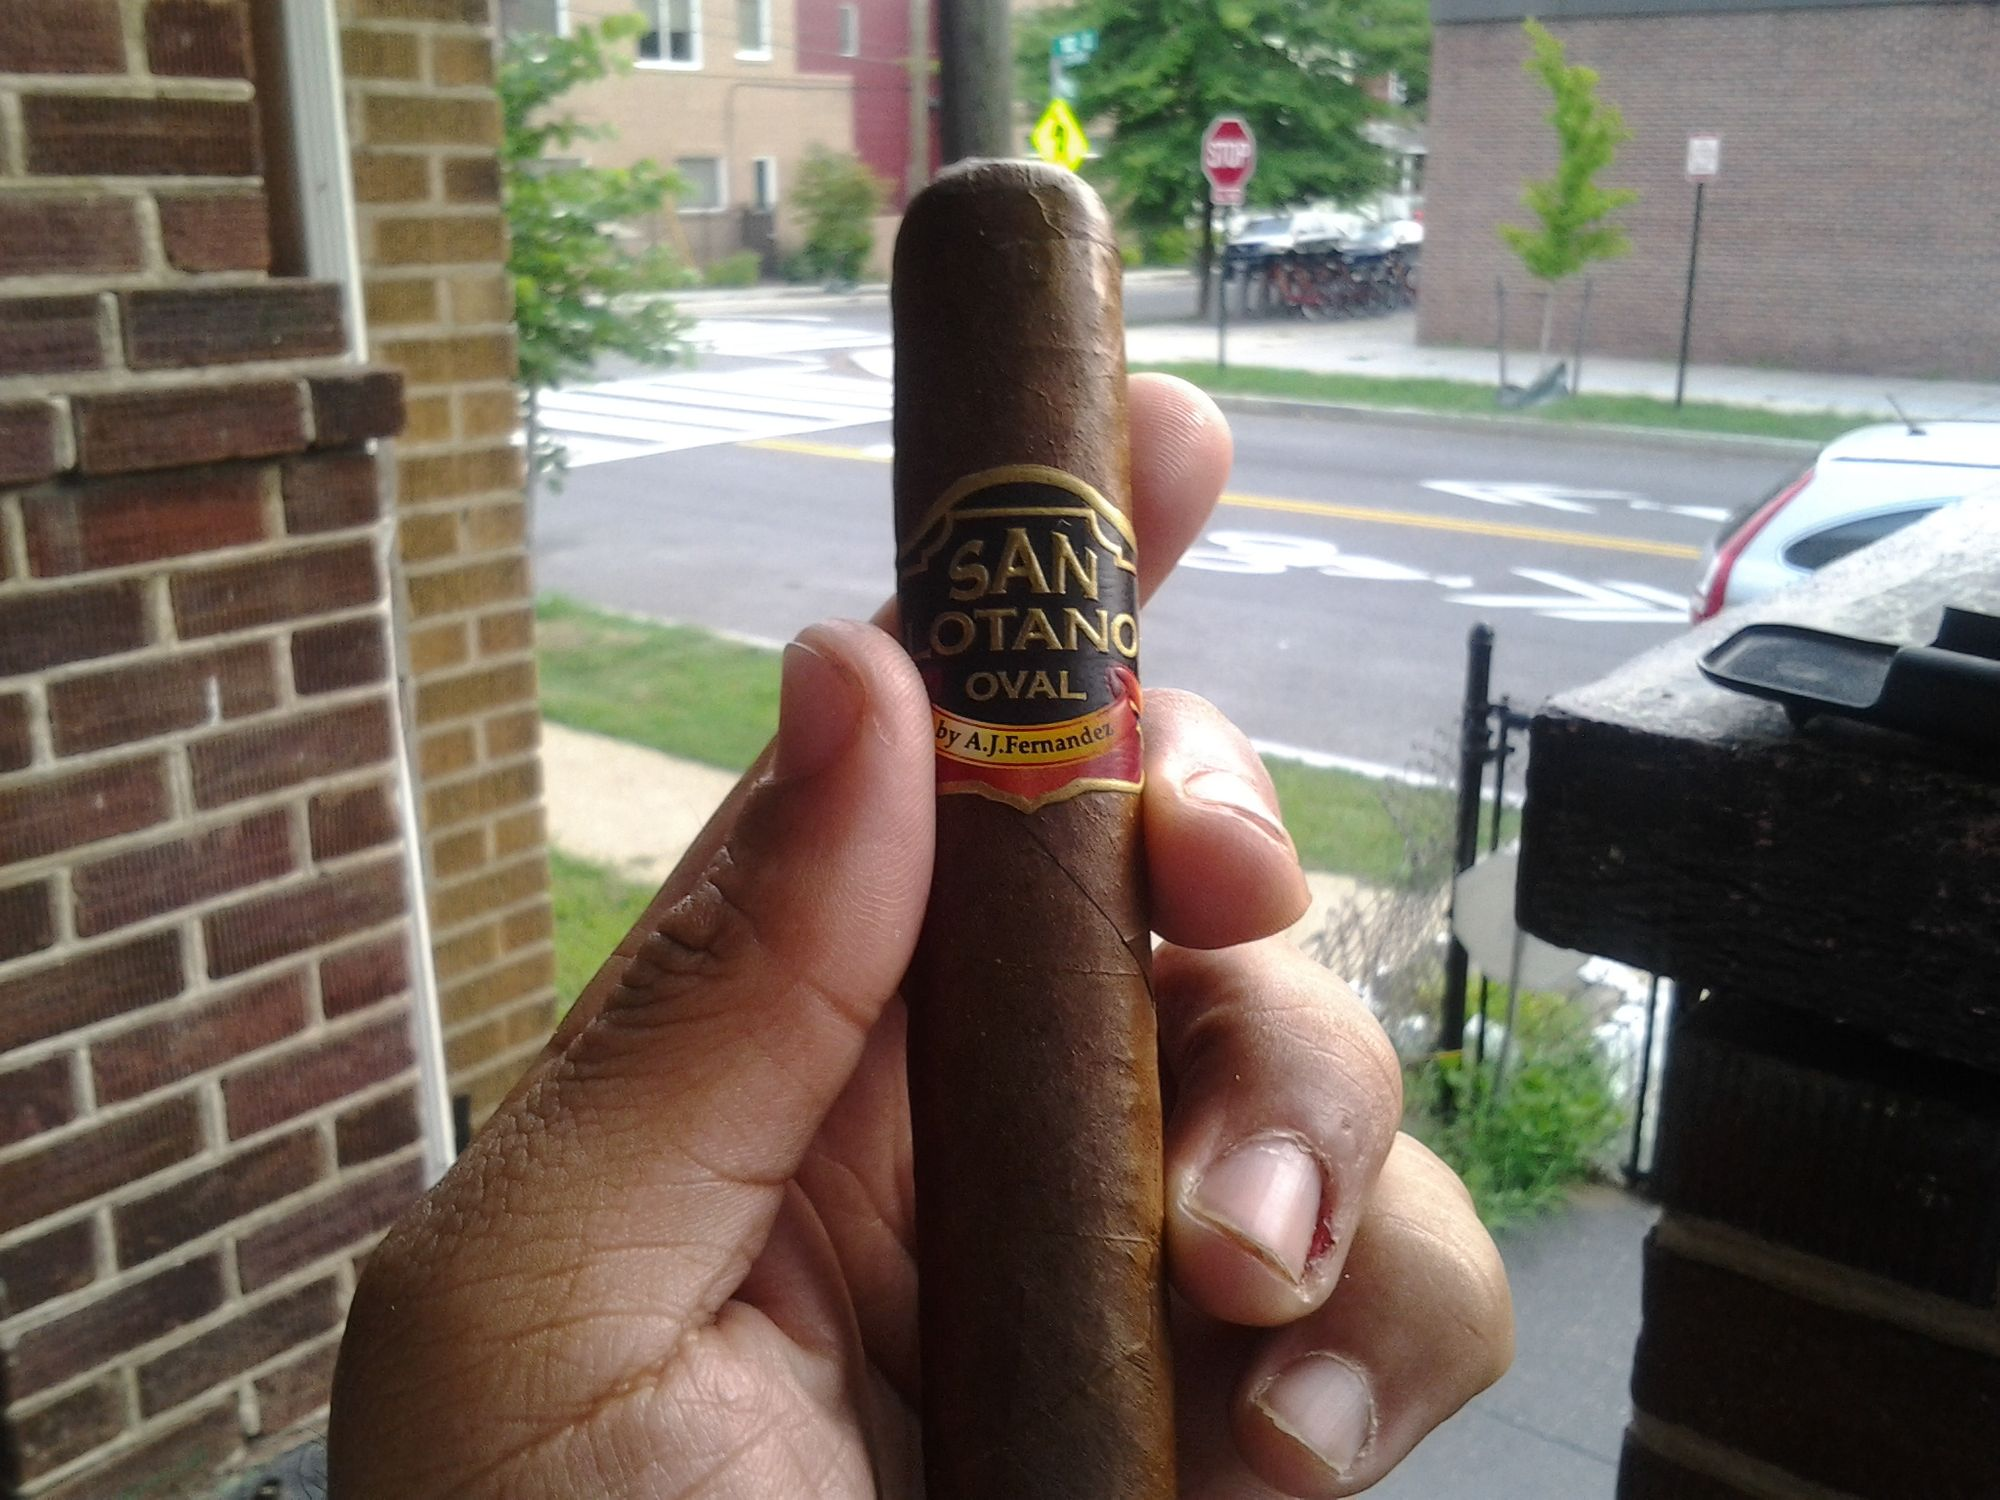 A.J. Fernandez Creates a Flawless Cigar With the San Lotano Oval